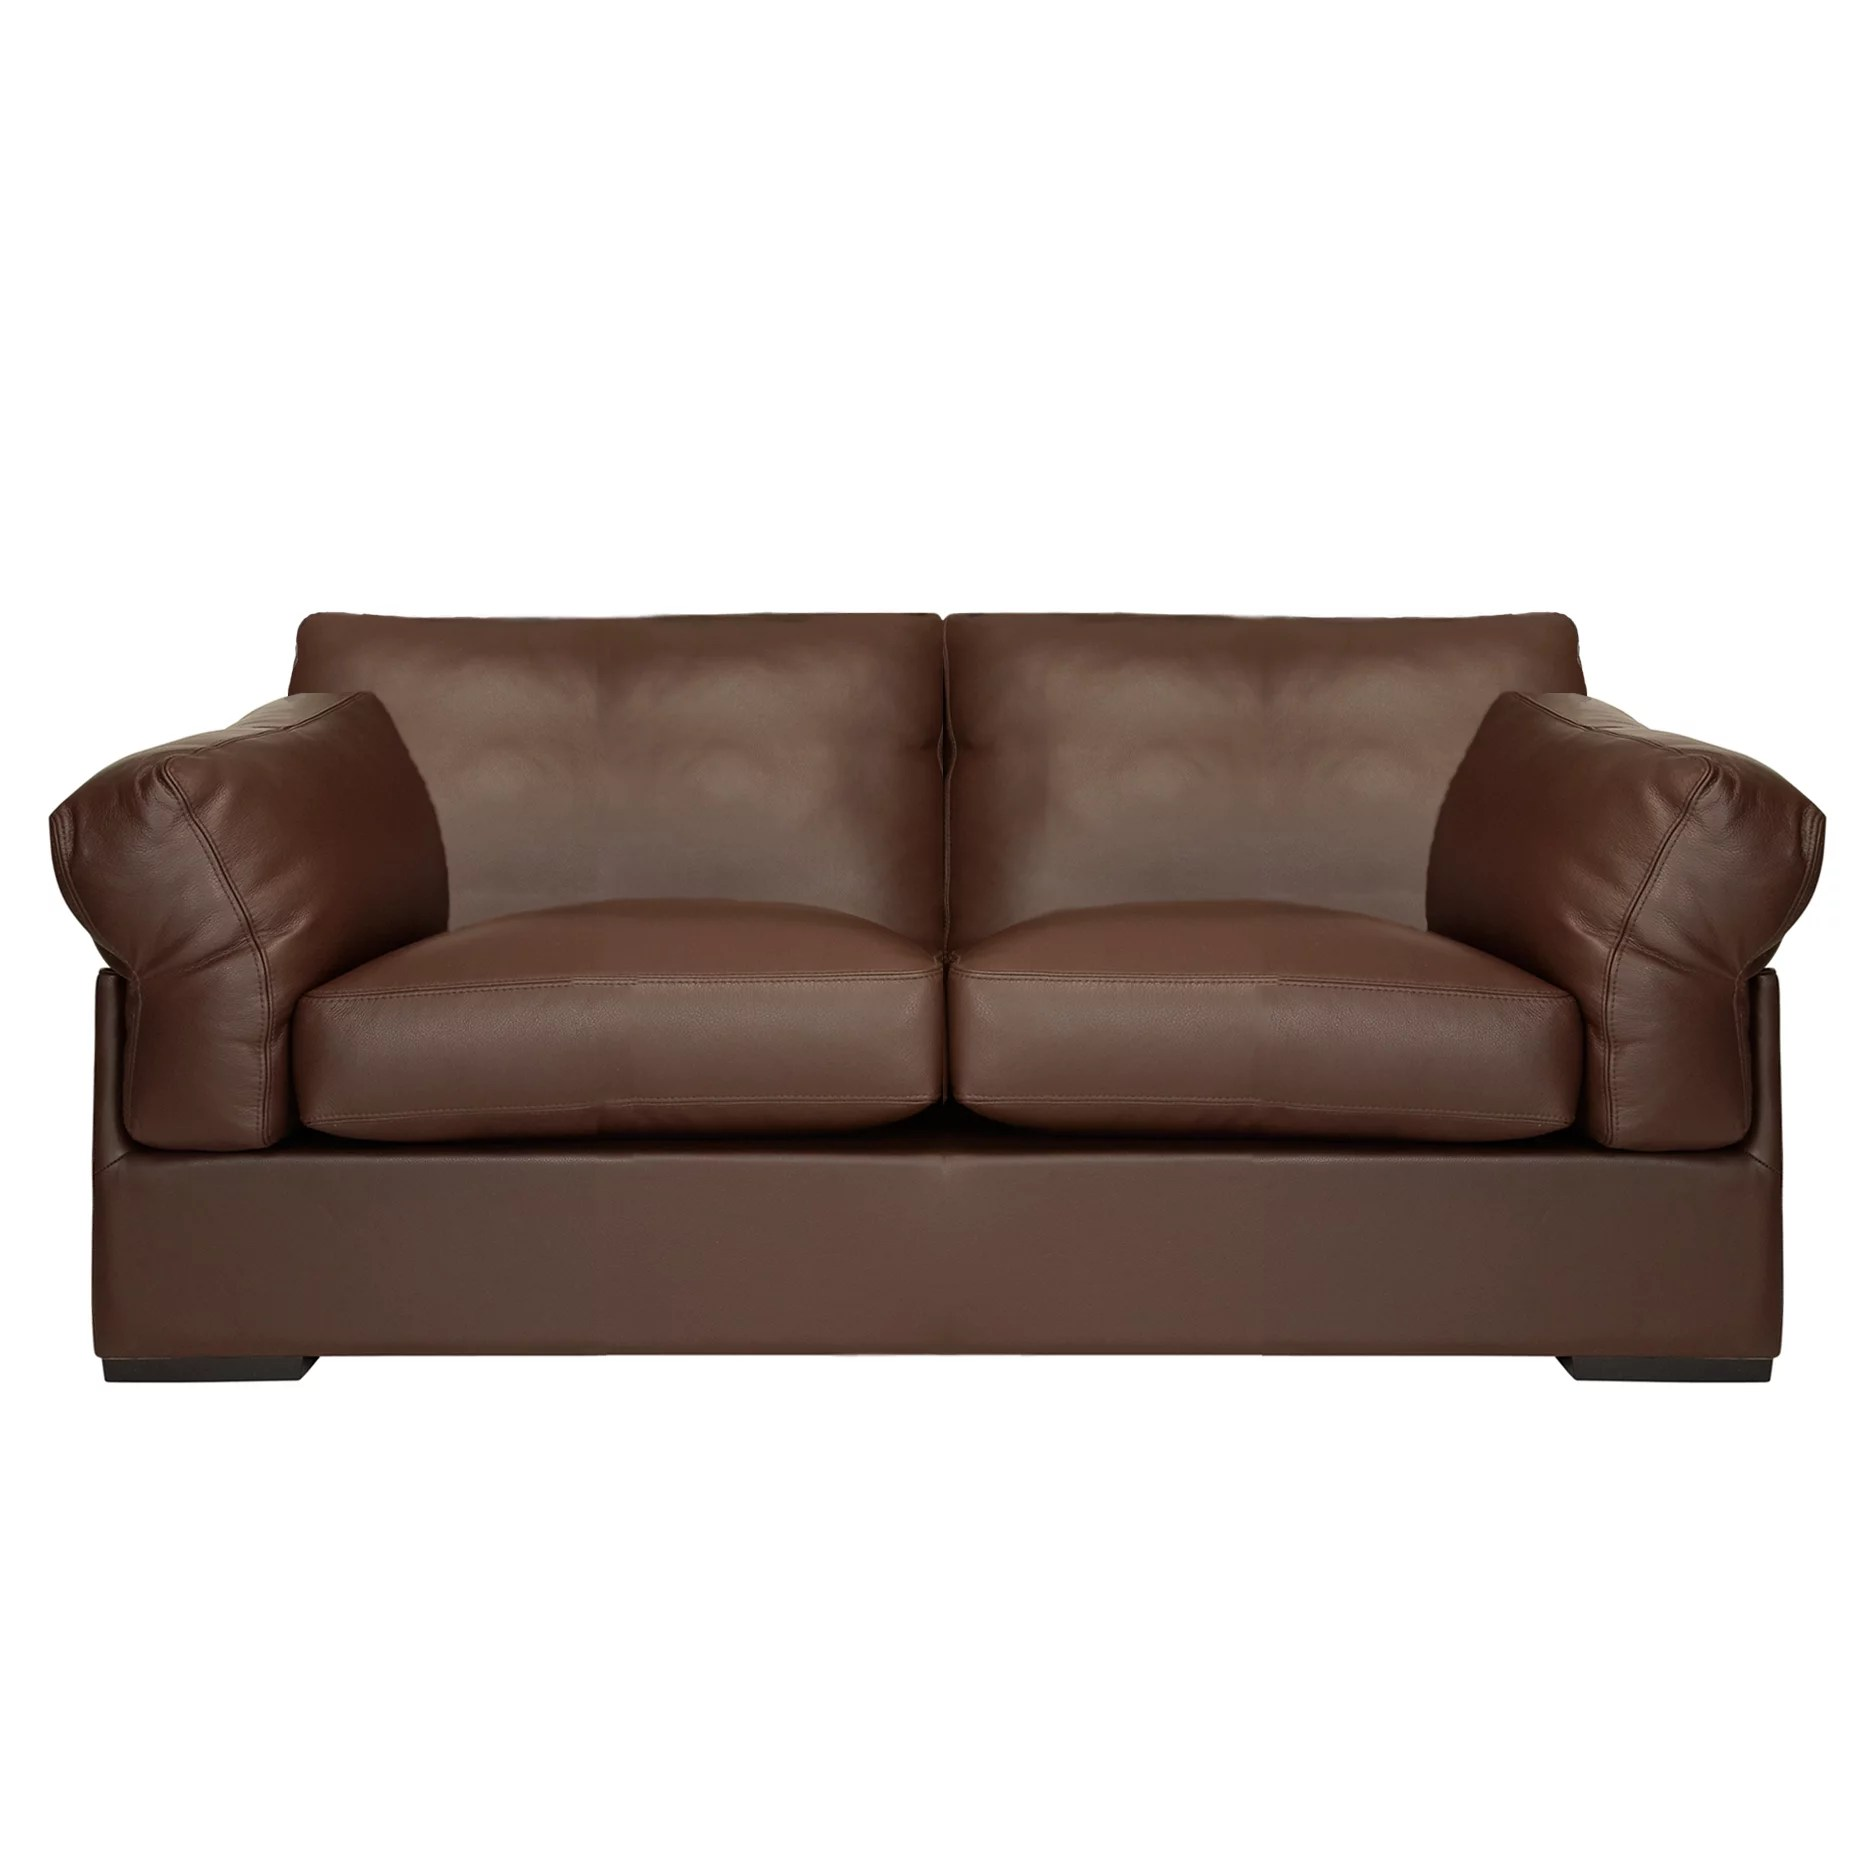 2 piece brown leather sofa backless john lewis partners java medium seater nature buyjohn online at johnlewis